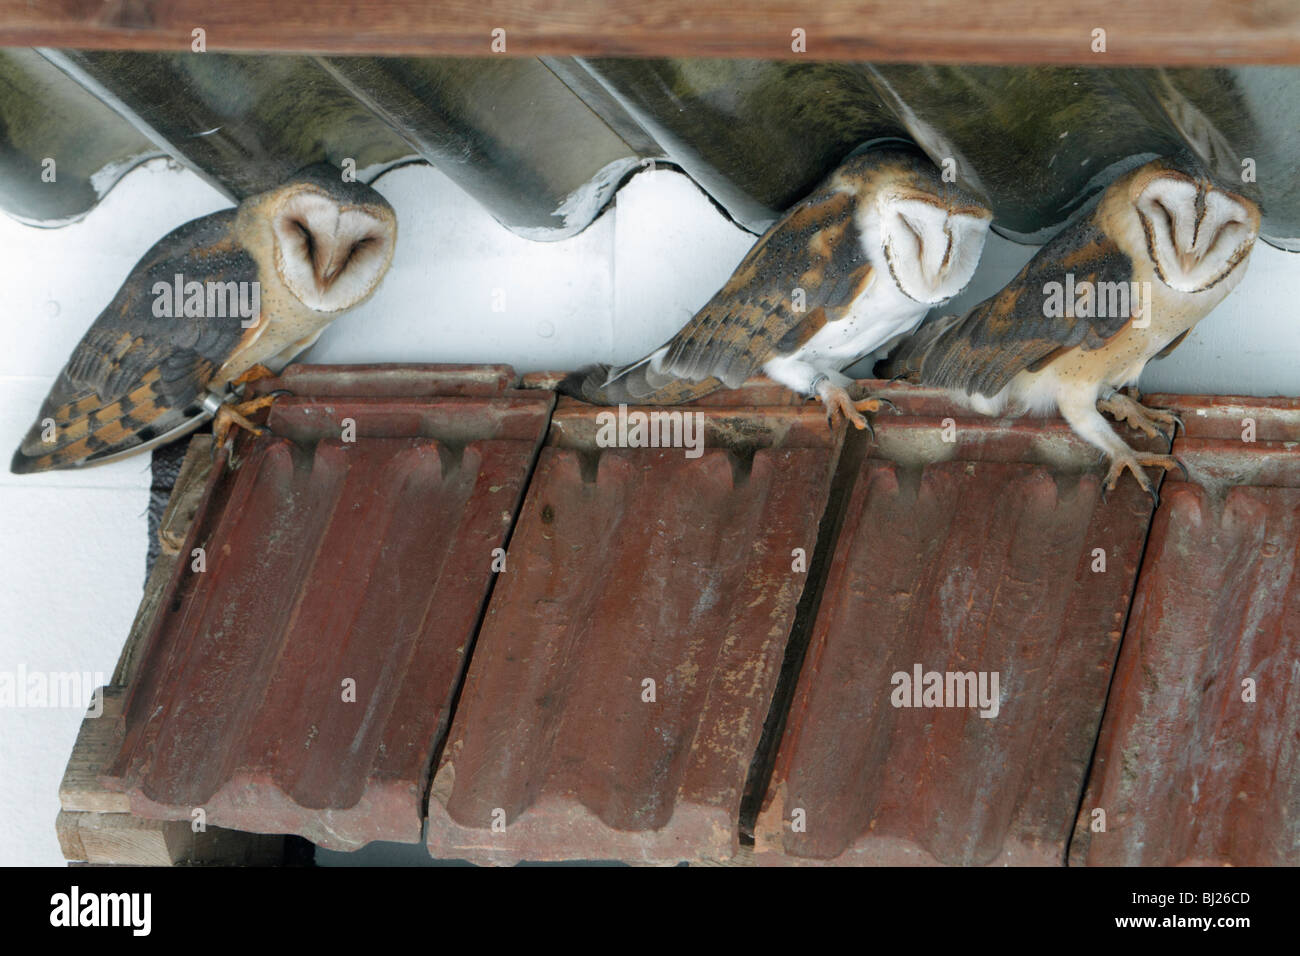 Barn Owl, Tyto alba, three resting during daytime, in building, Germany - Stock Image